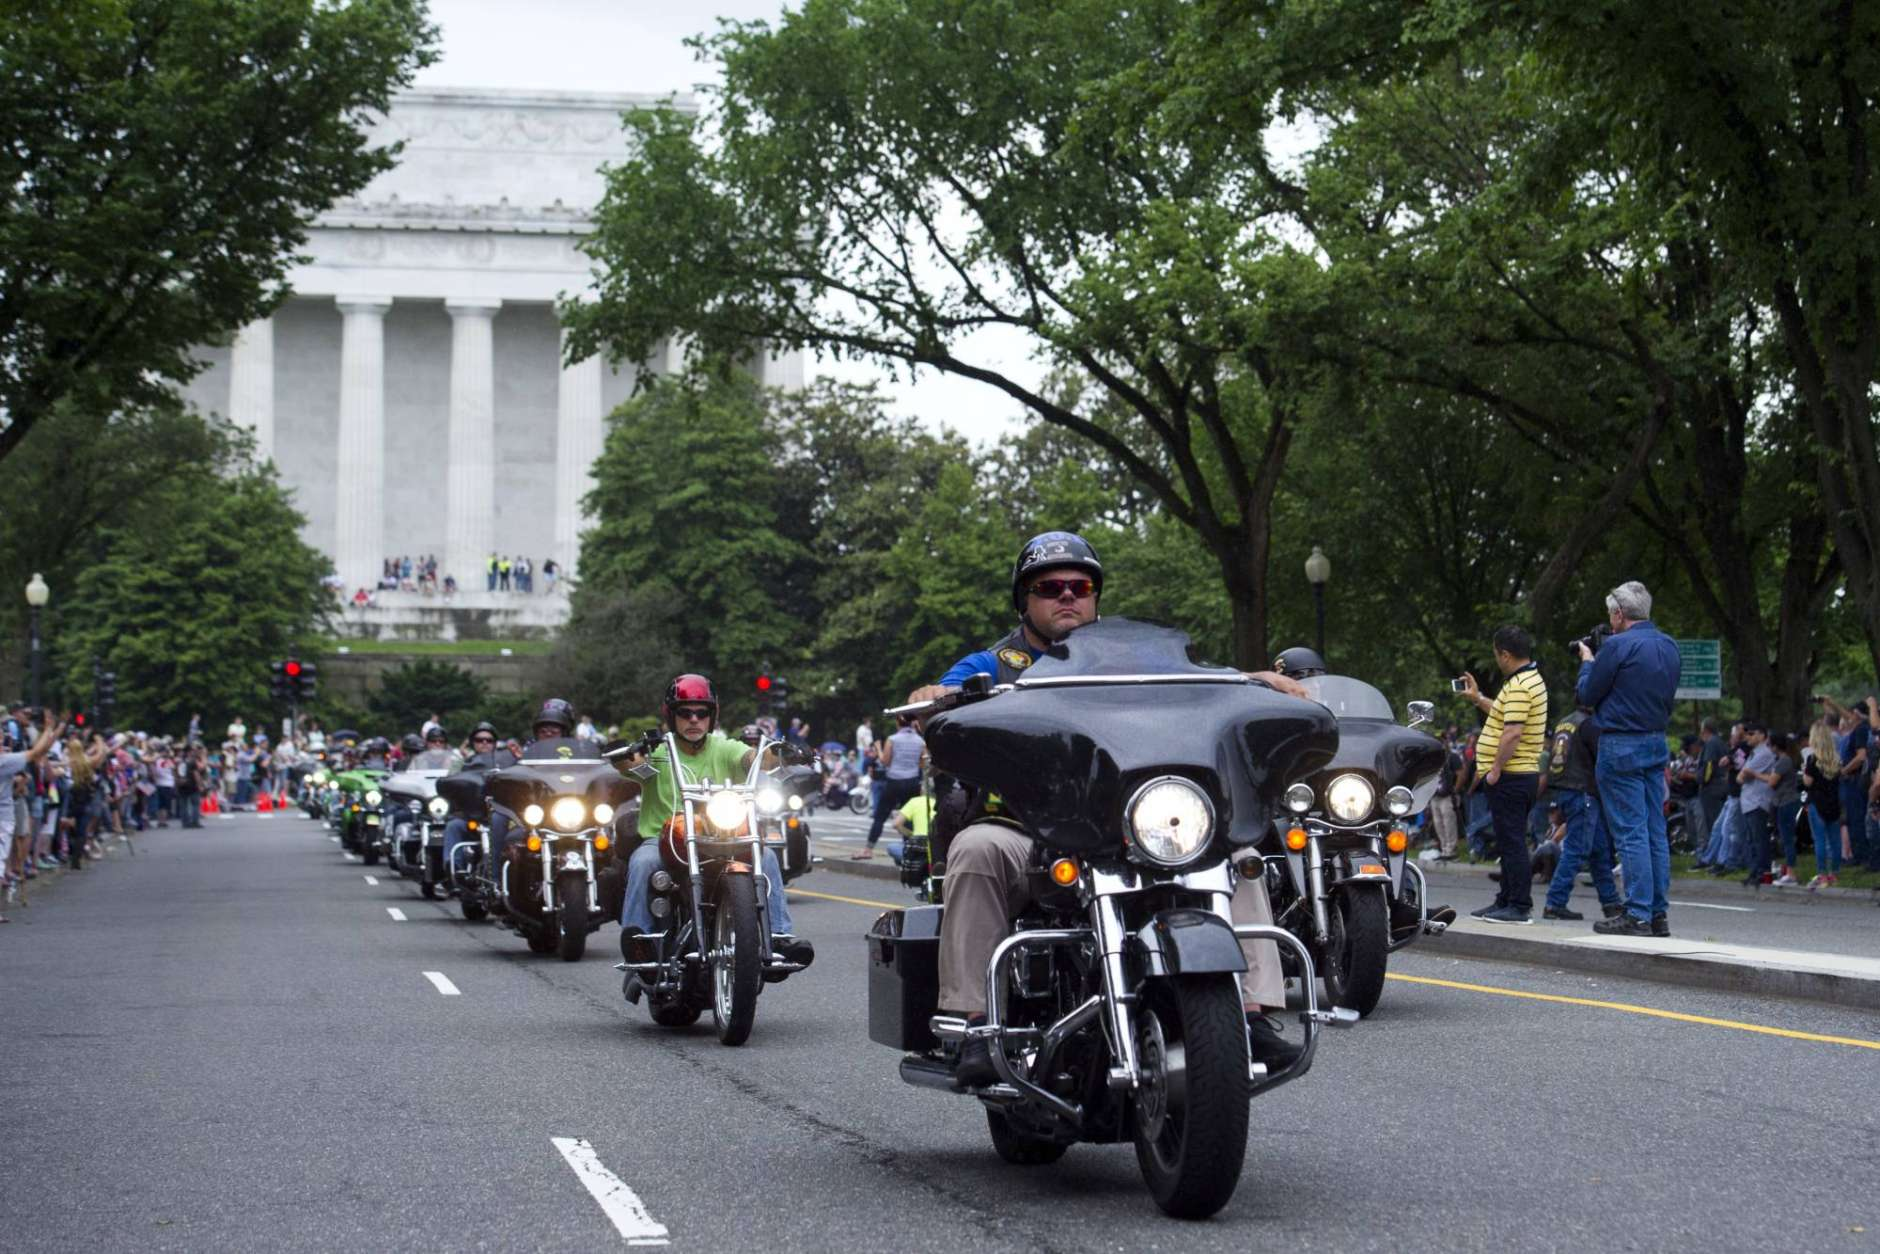 Motorcyclists pass the Lincoln Memorial during the 30th anniversary of the Rolling Thunder 'Ride for Freedom' in Washington, Sunday, May 28, 2017. Rolling Thunder seeks to bring full accountability for all U.S. prisoners of war and missing in action (POW/MIA) soldiers. (AP Photo/Cliff Owen)